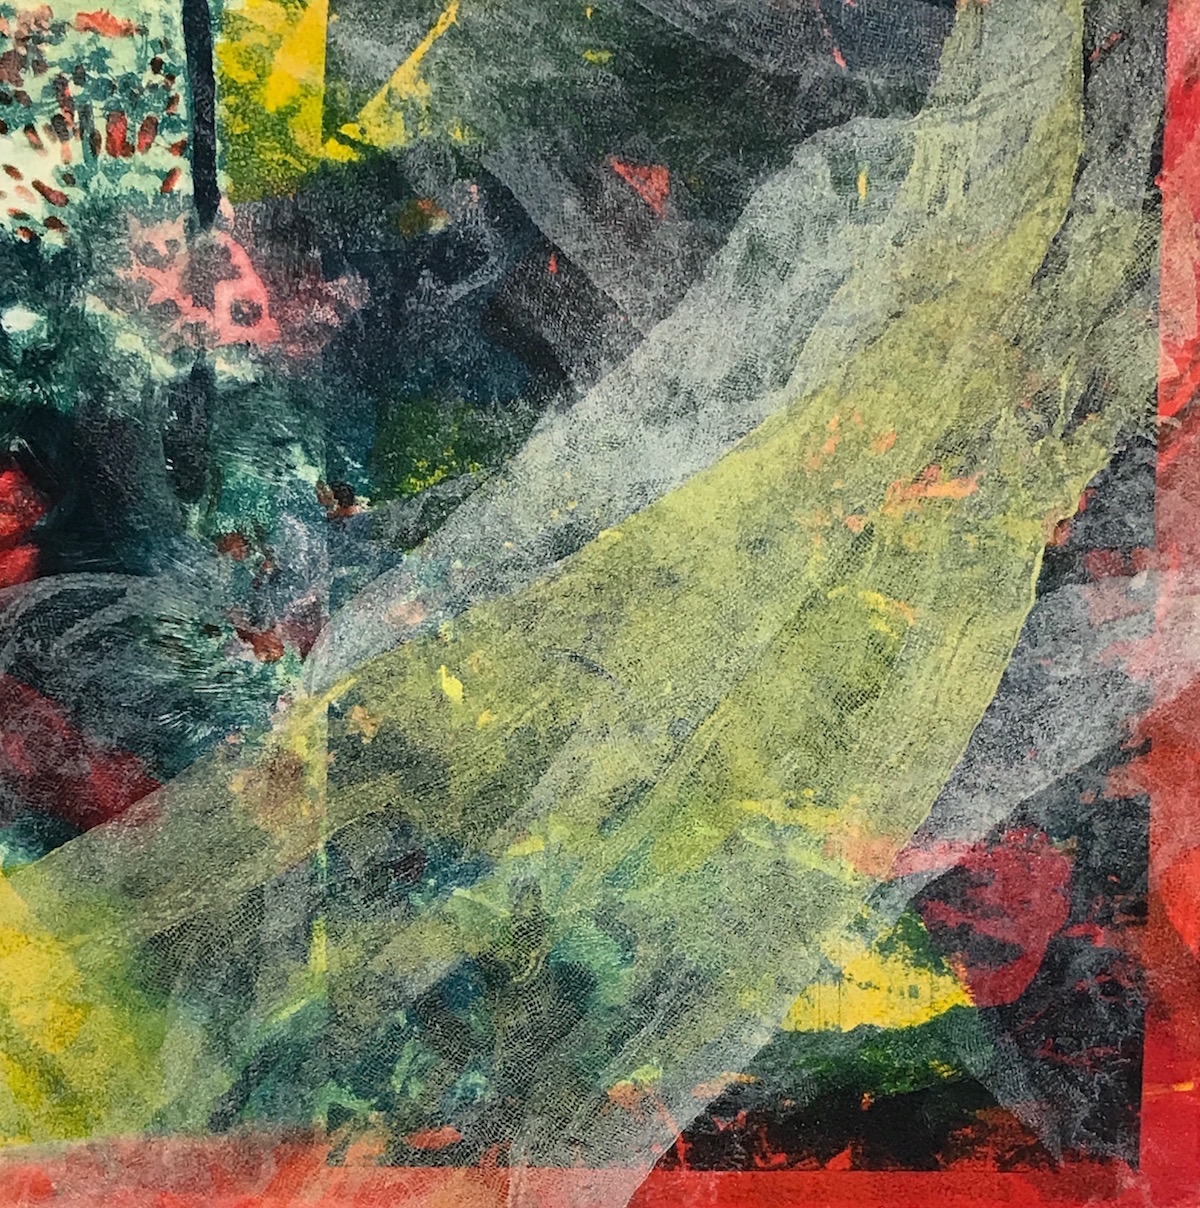 """Bedroom Window II"", monoprint, 18"" x 17"", $300 (framed)"